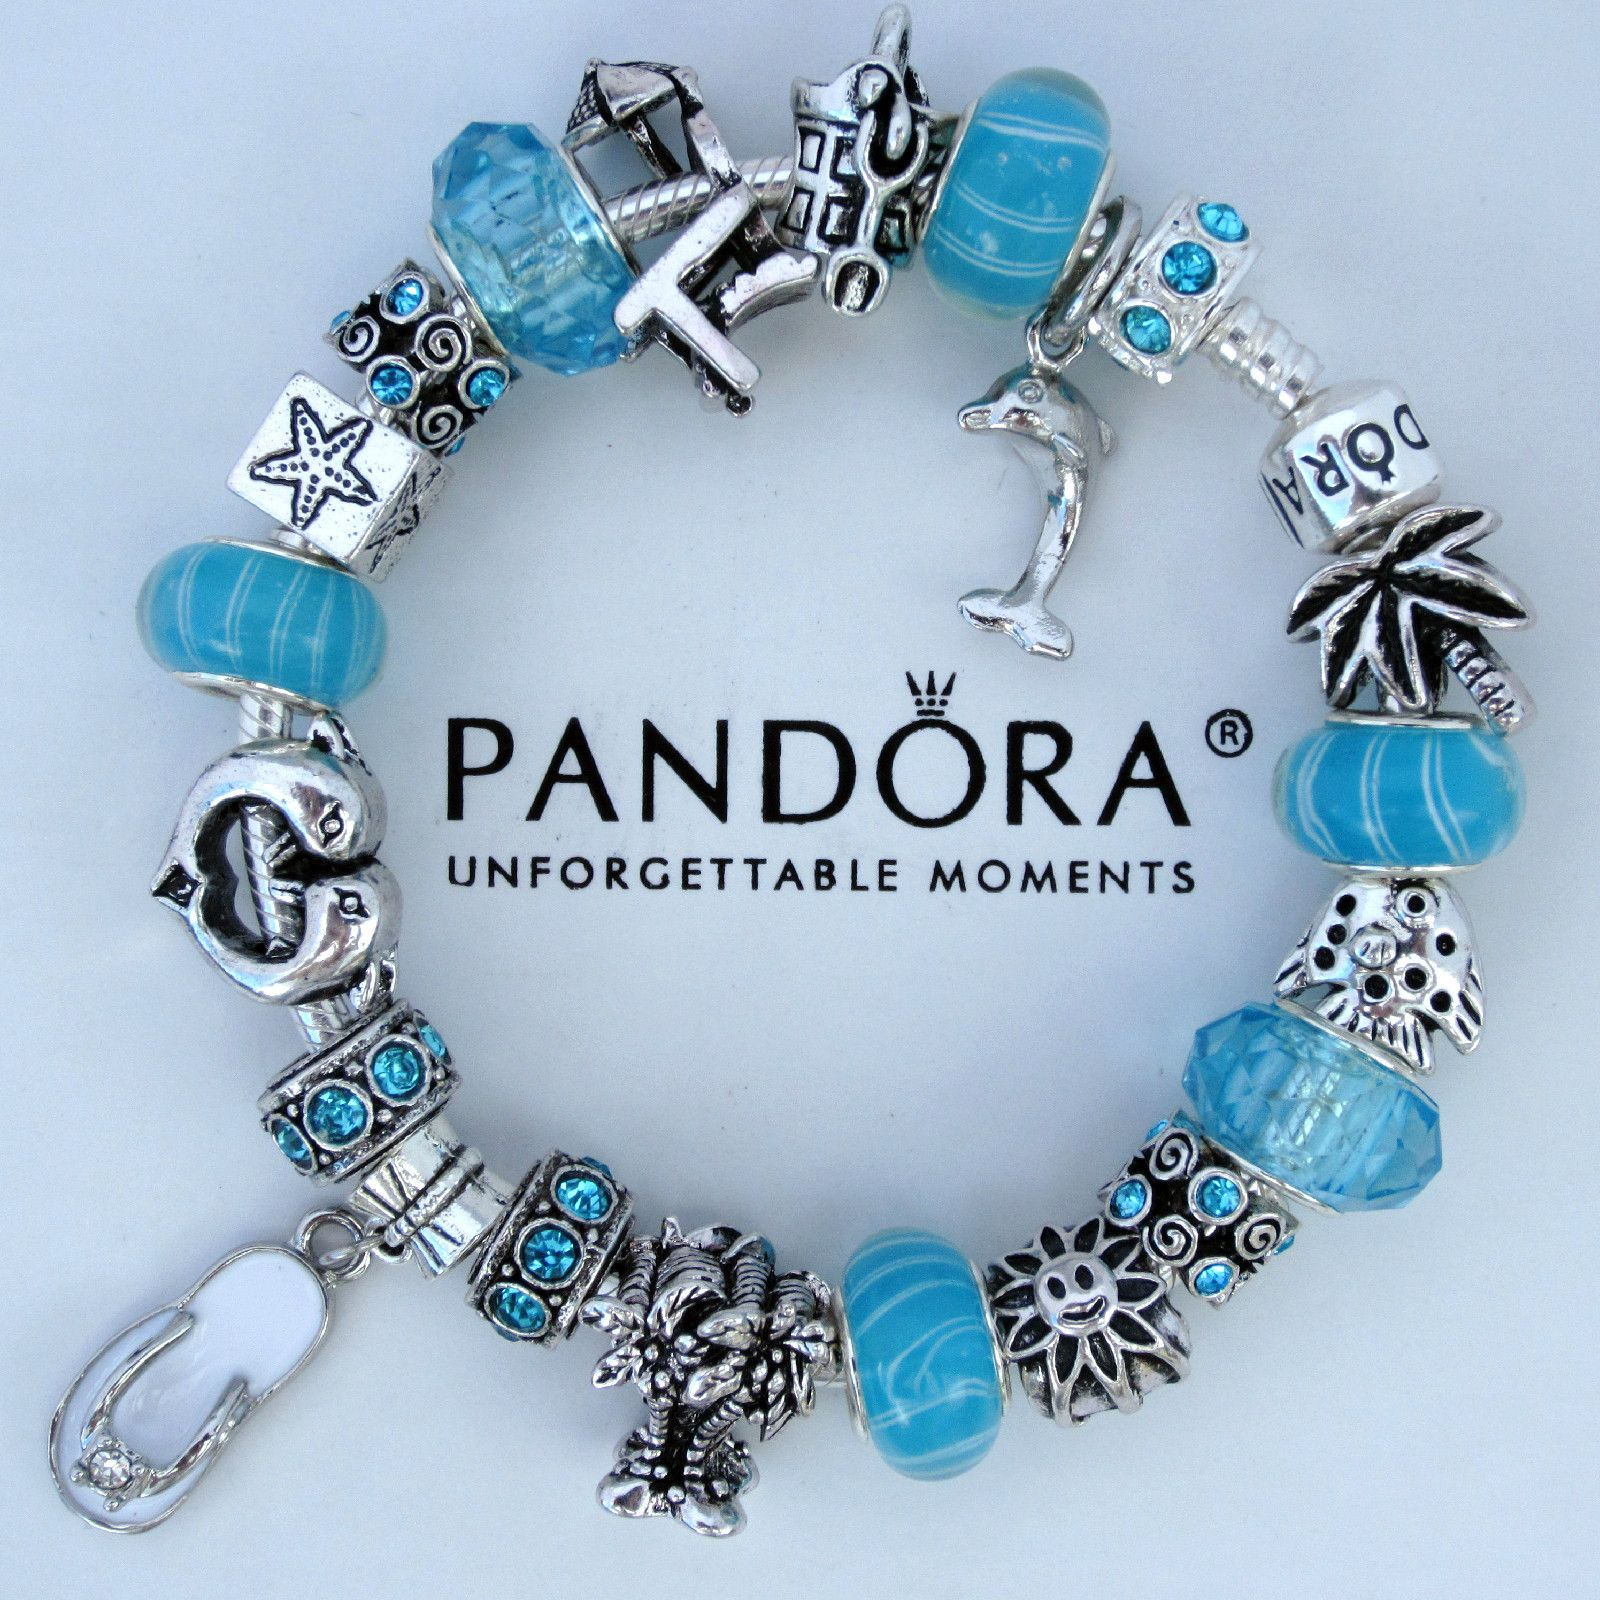 piglet pandora than bangles disney more of spring just bangle charm archives the tigger charms a tag art new review